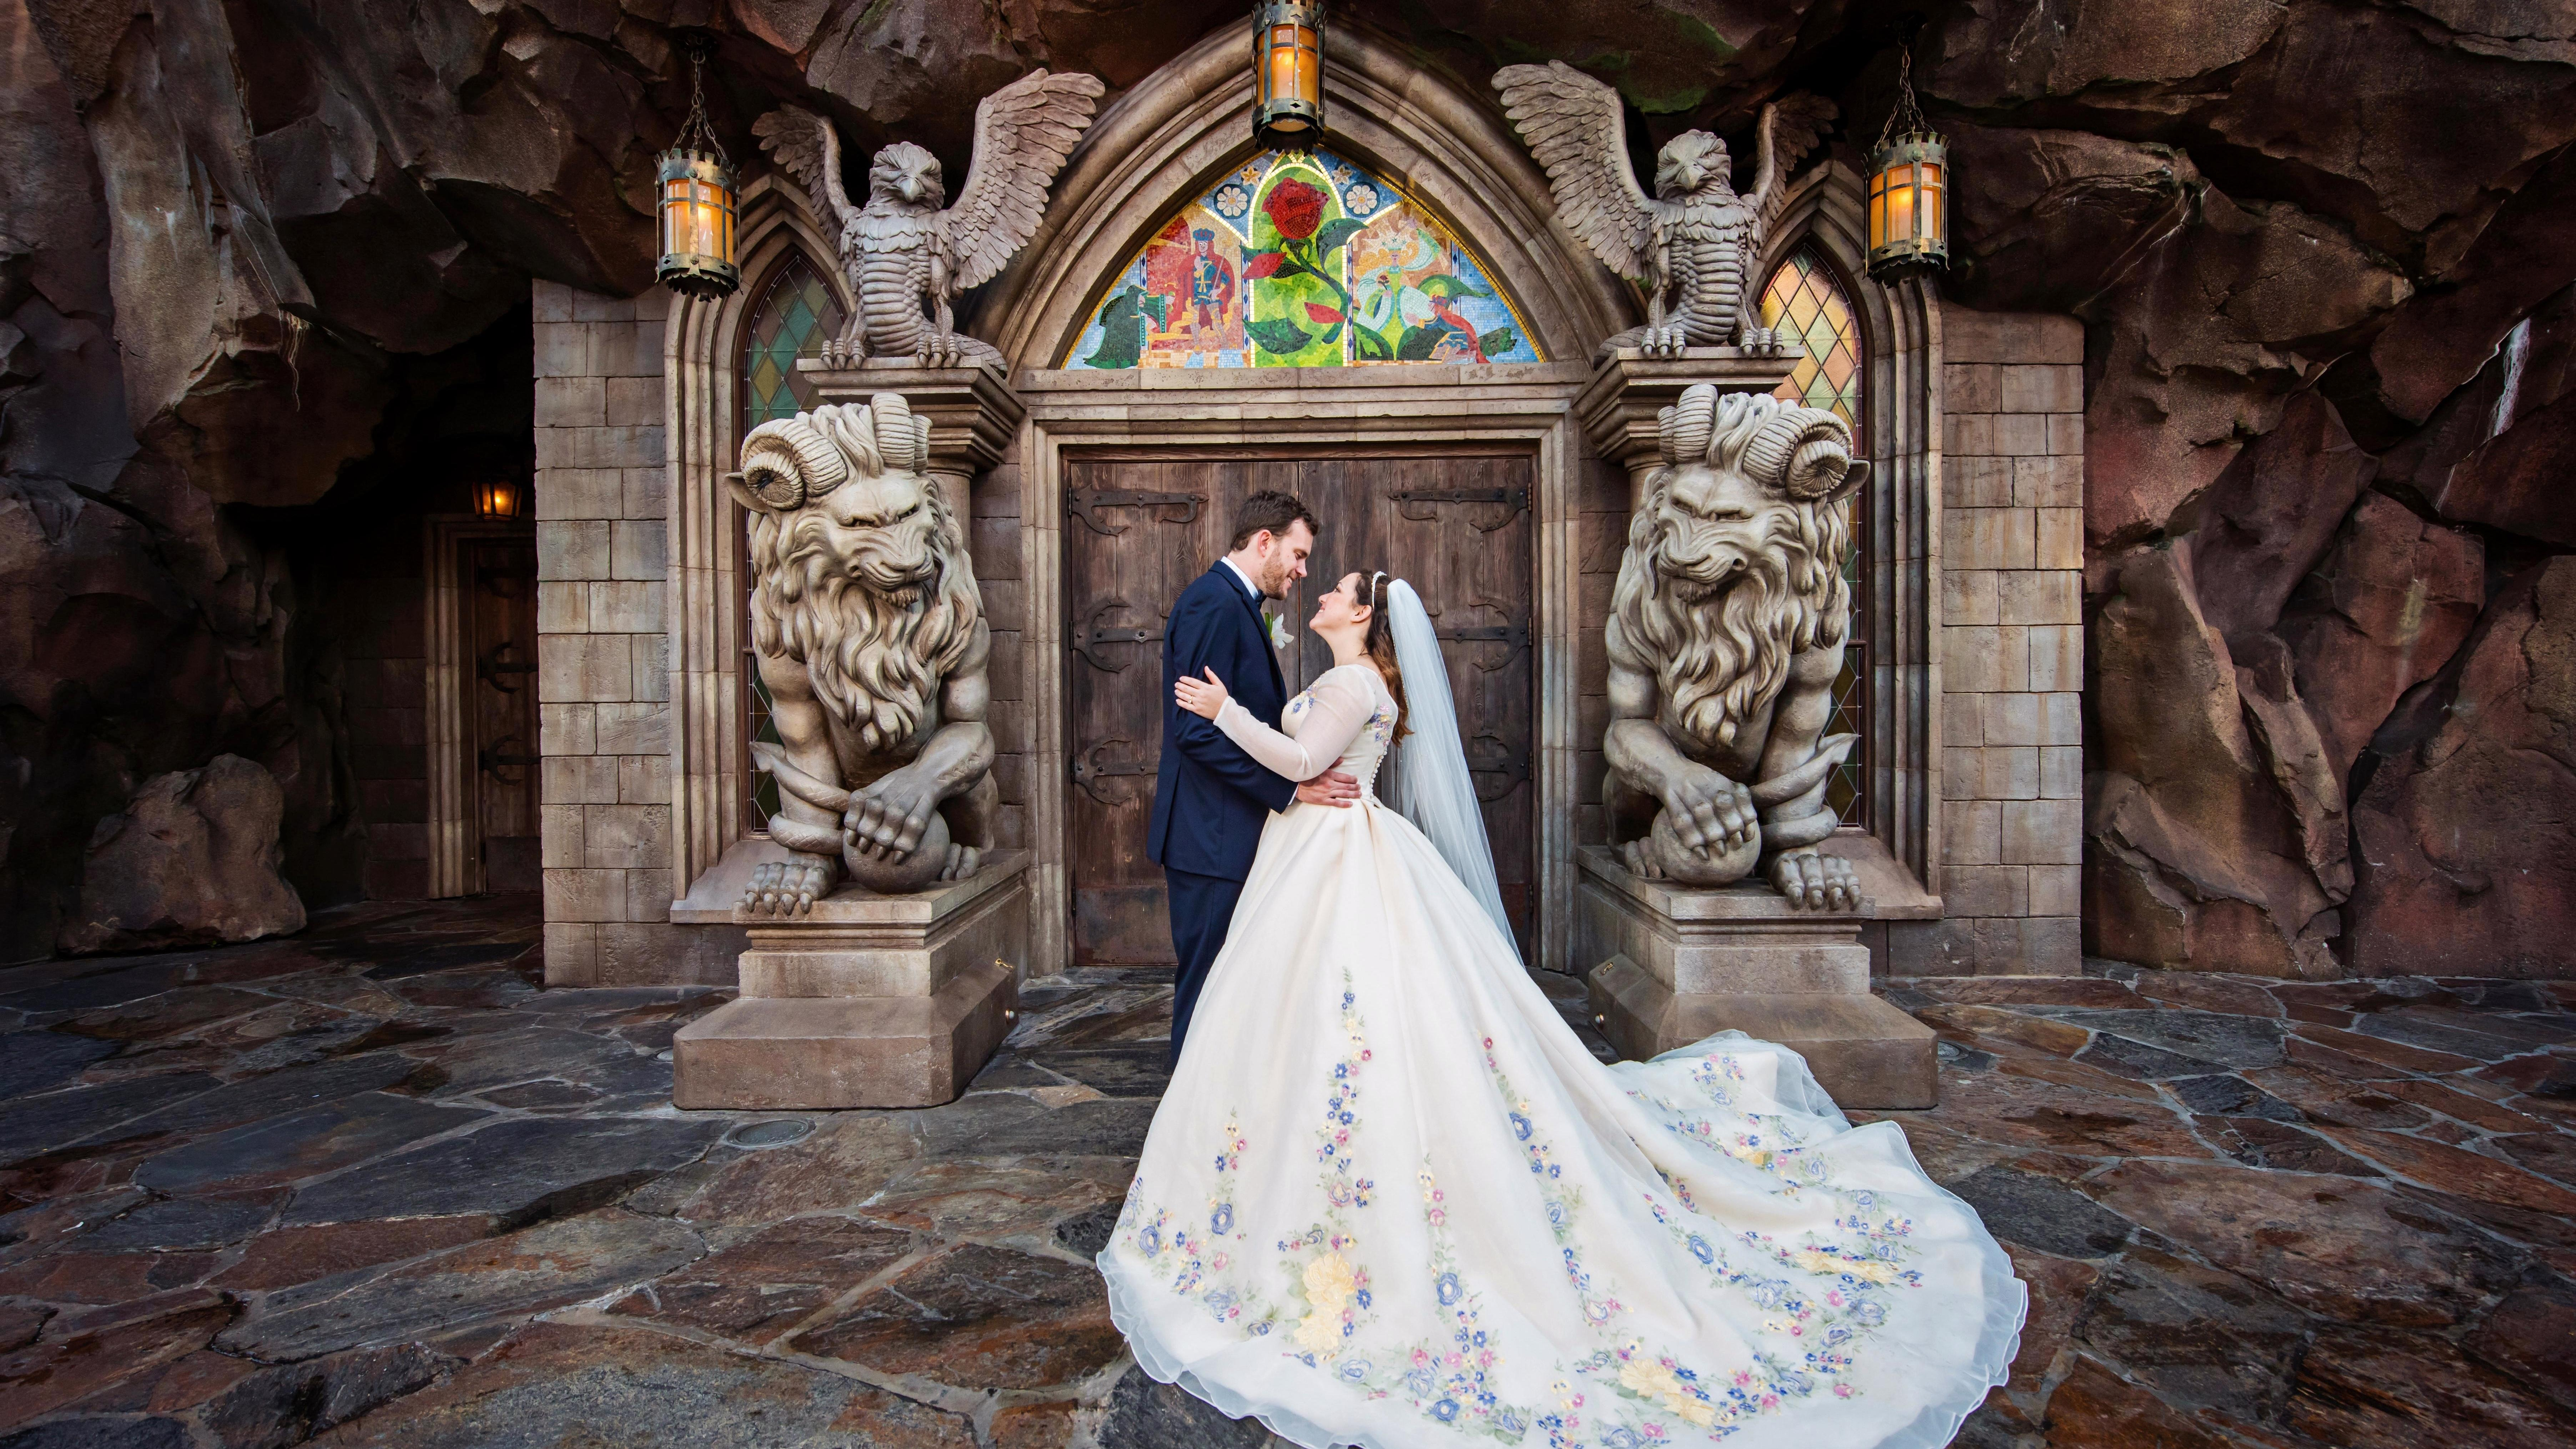 You Have to See This Magical Disney's Fairy Tale Wedding Portrait Session